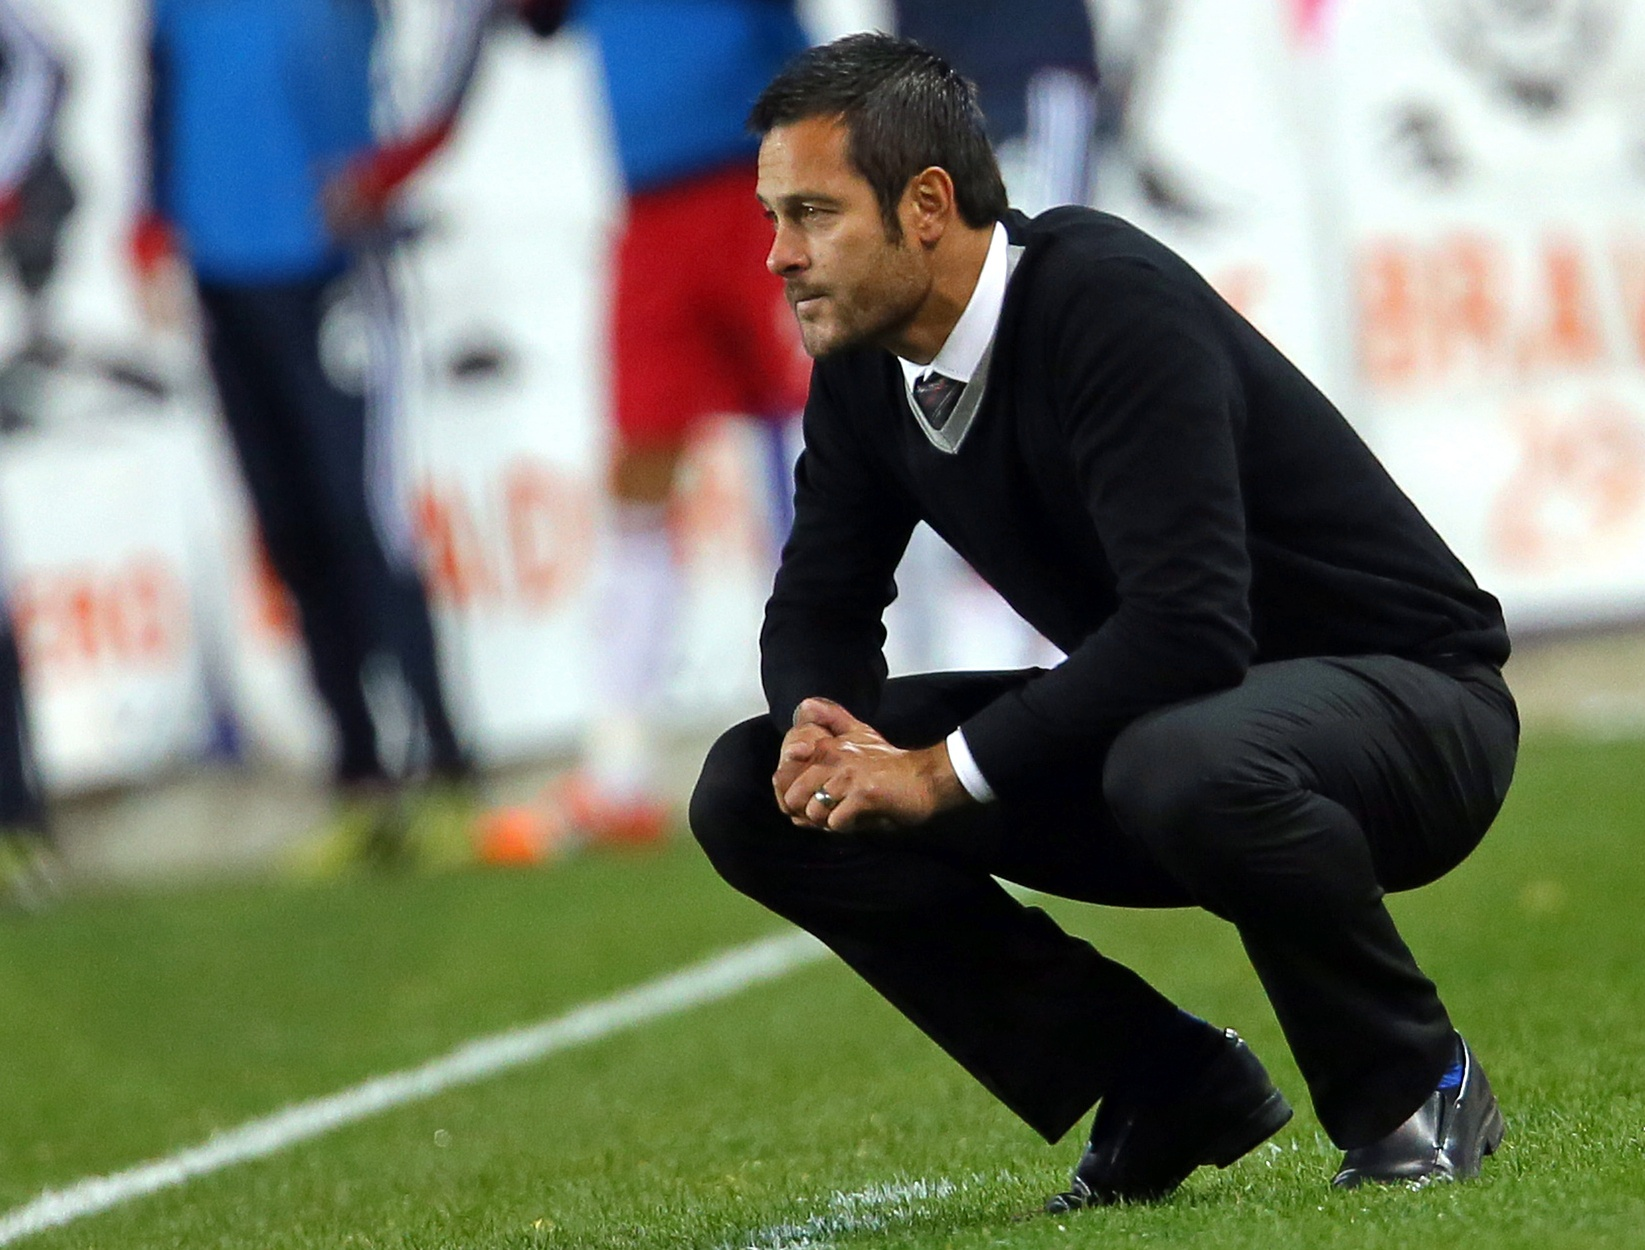 New York Red Bulls Should Have Doubled Down On Mike Petke, Not Fired Him